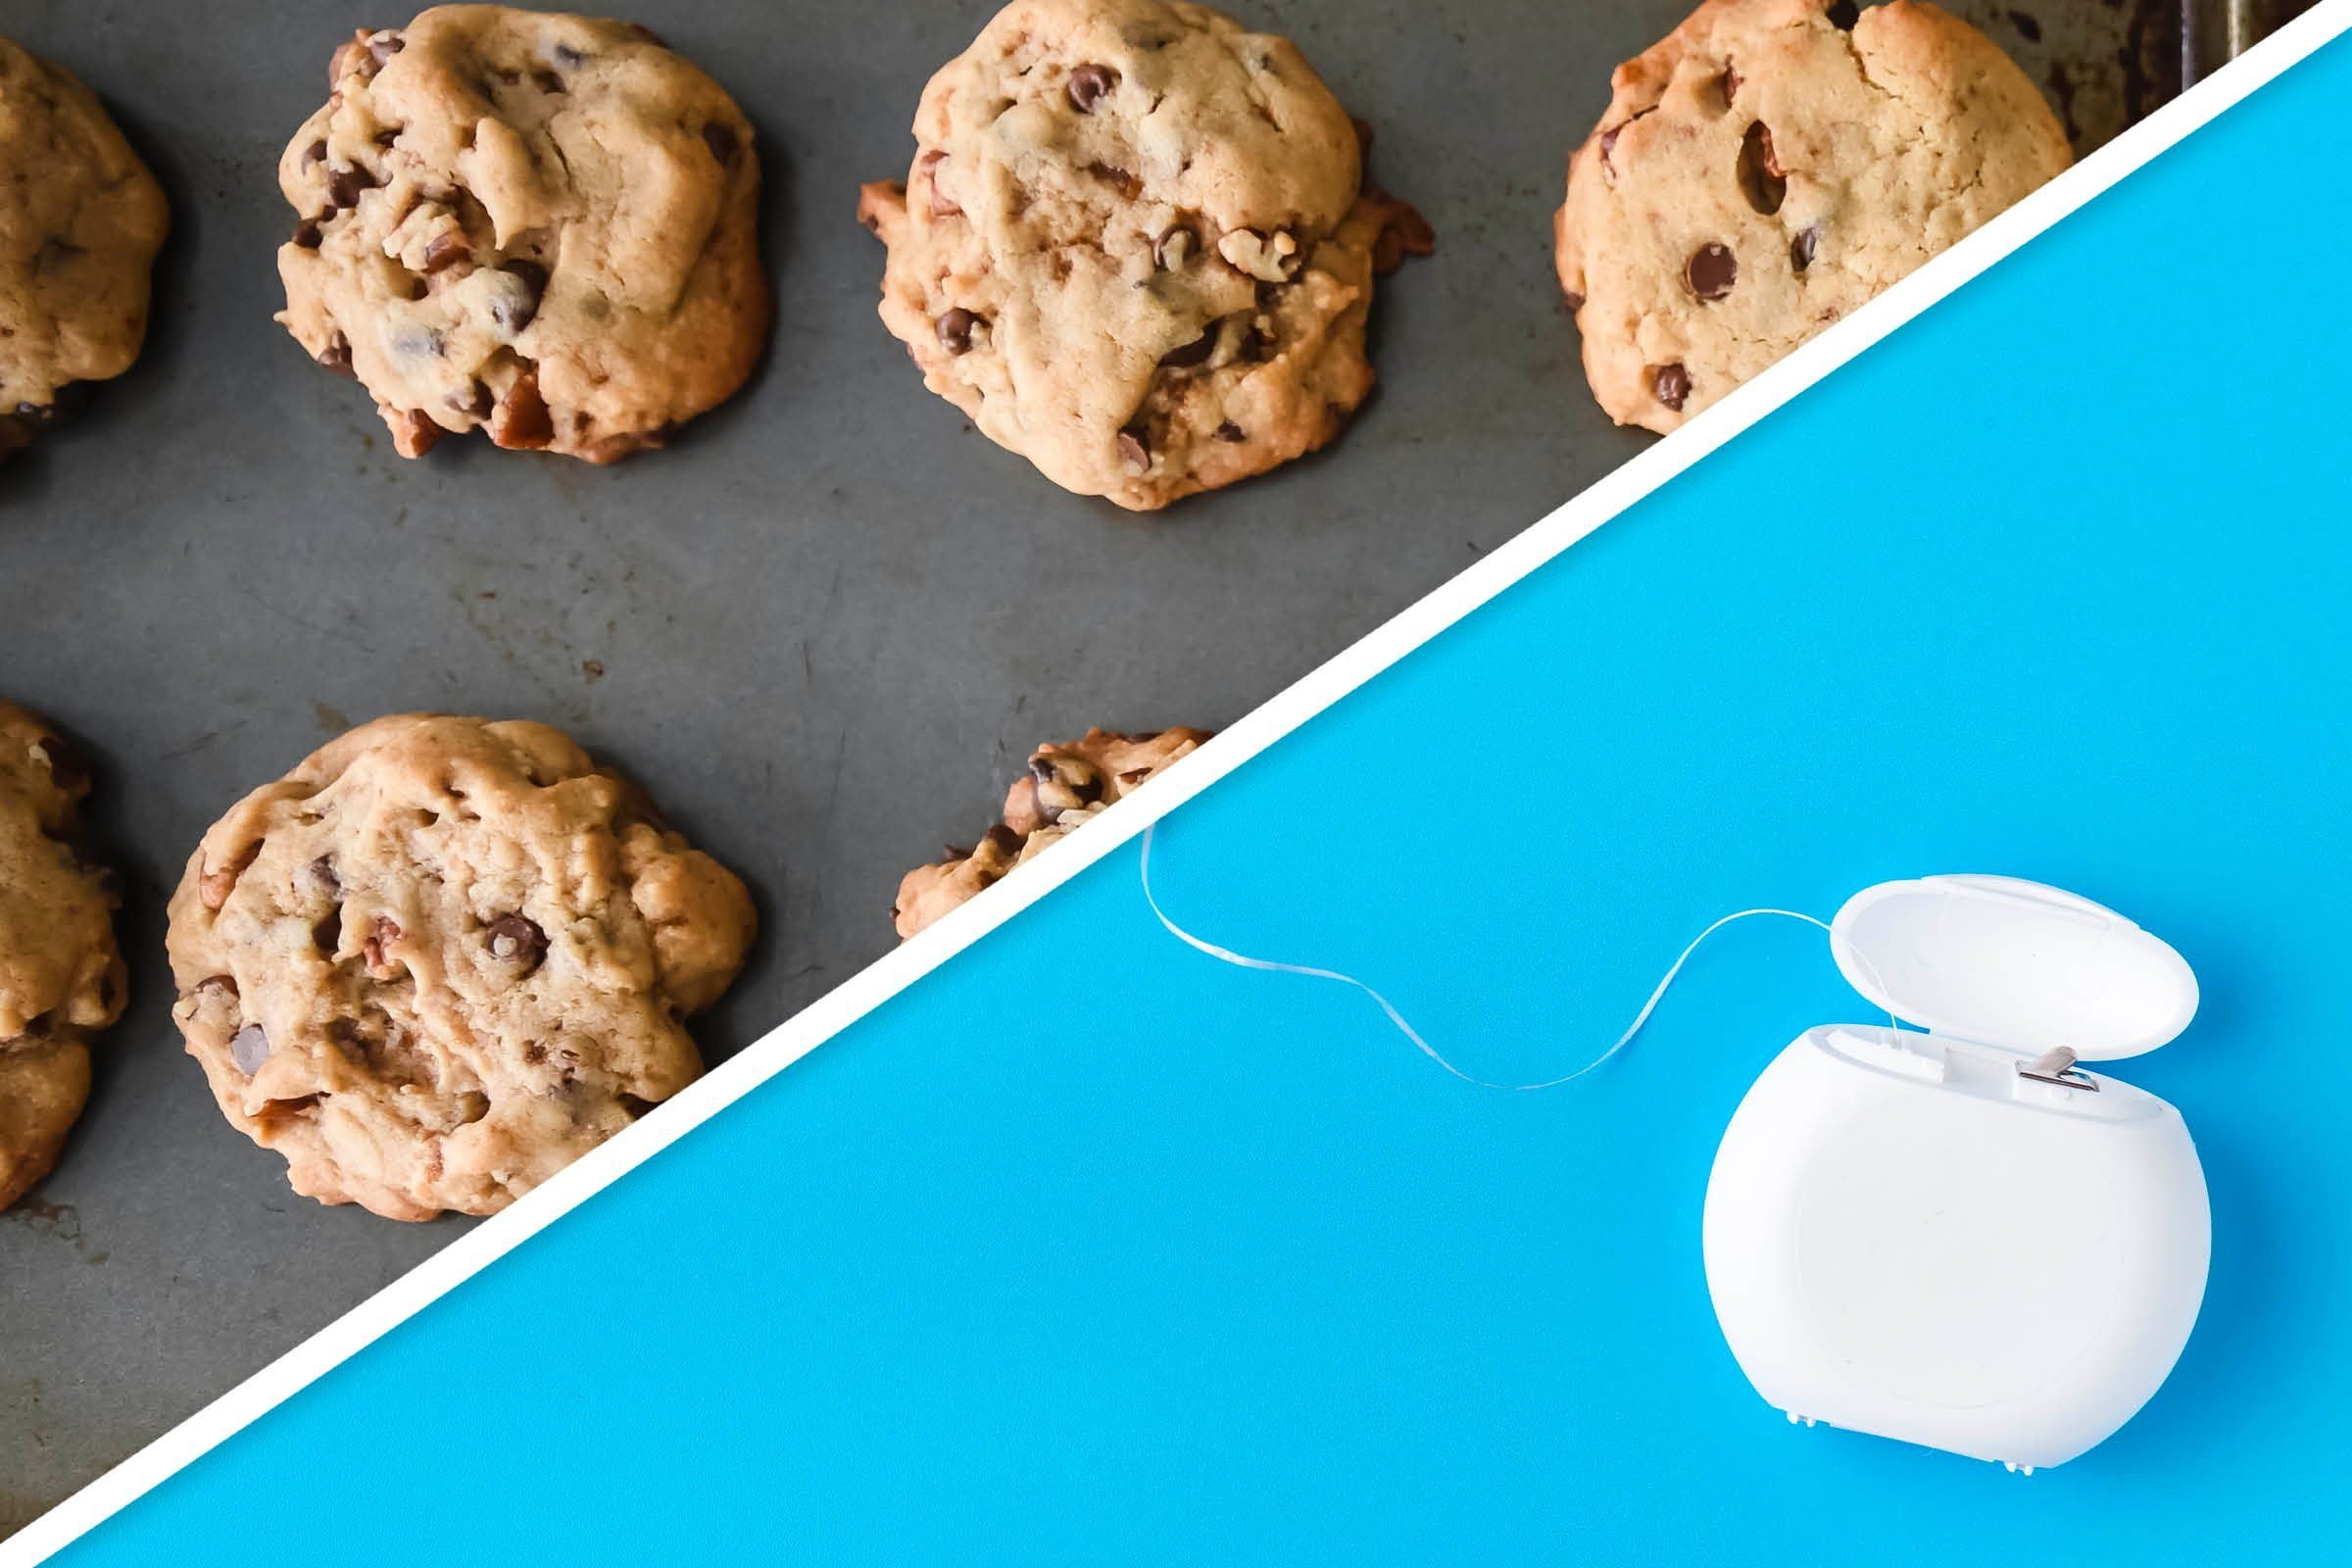 cookies on baking sheet and floss